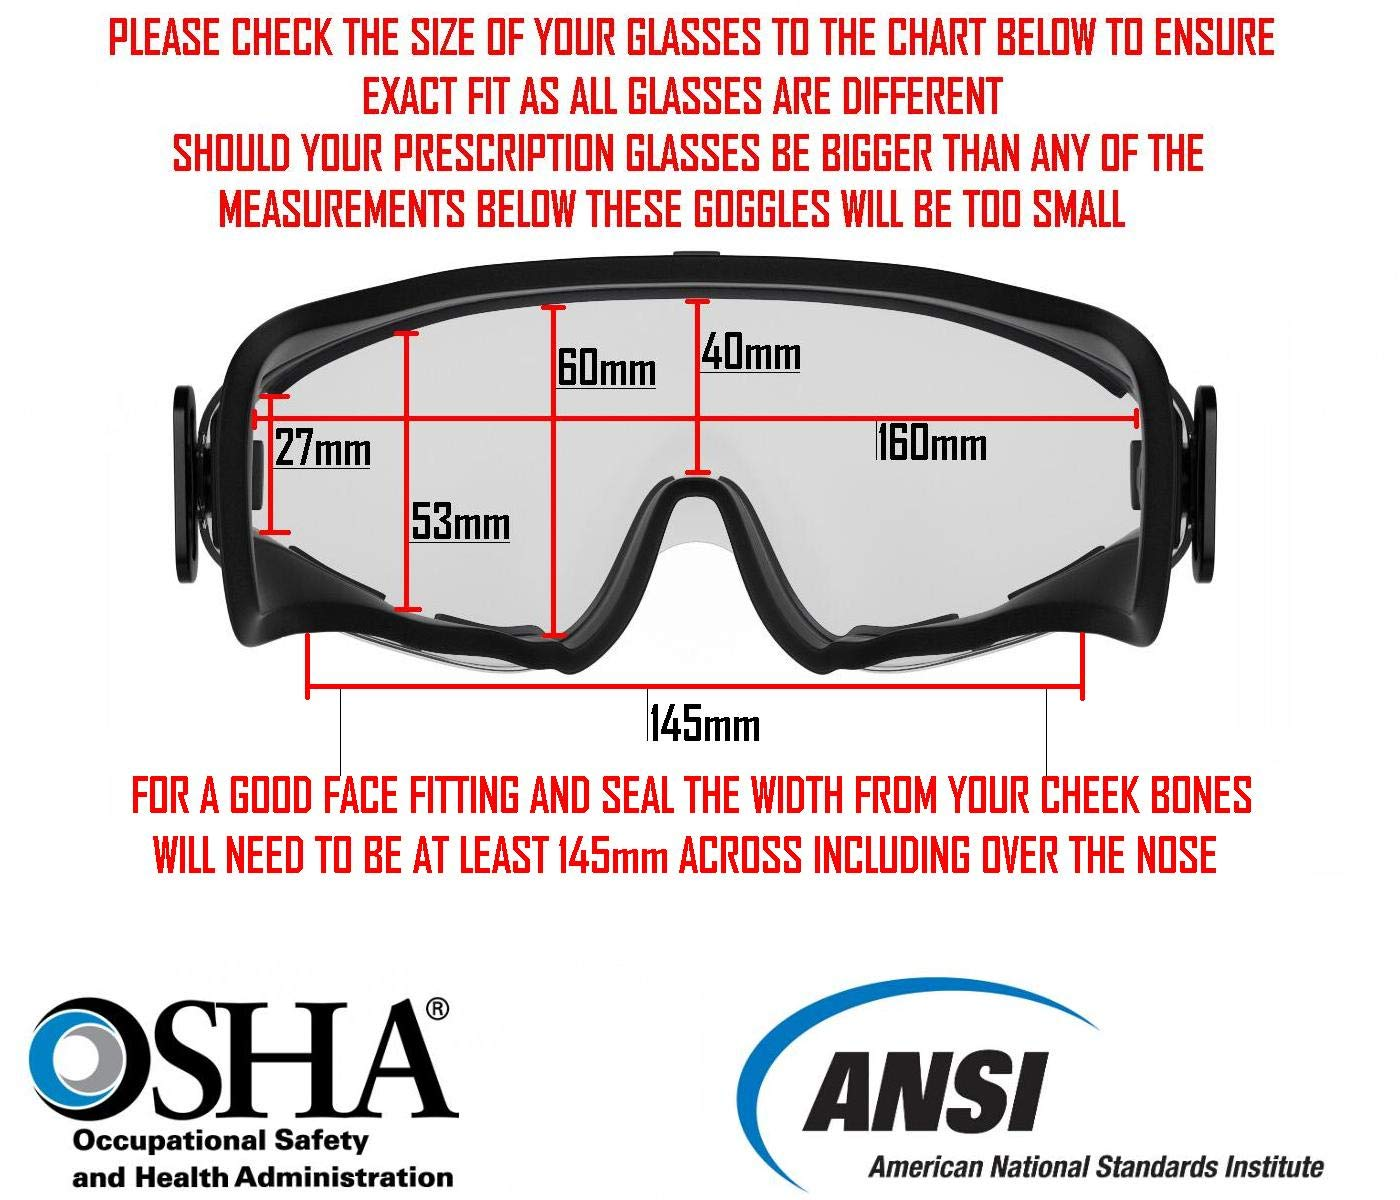 65b86aeb8f Safety Goggles Fits Over Prescription Glasses Clear Anti Fog Anti Scratch  Impact Splash Proof For Workplace - Chemistry Lab ANSI Z87.1 Approved Free  Safety ...